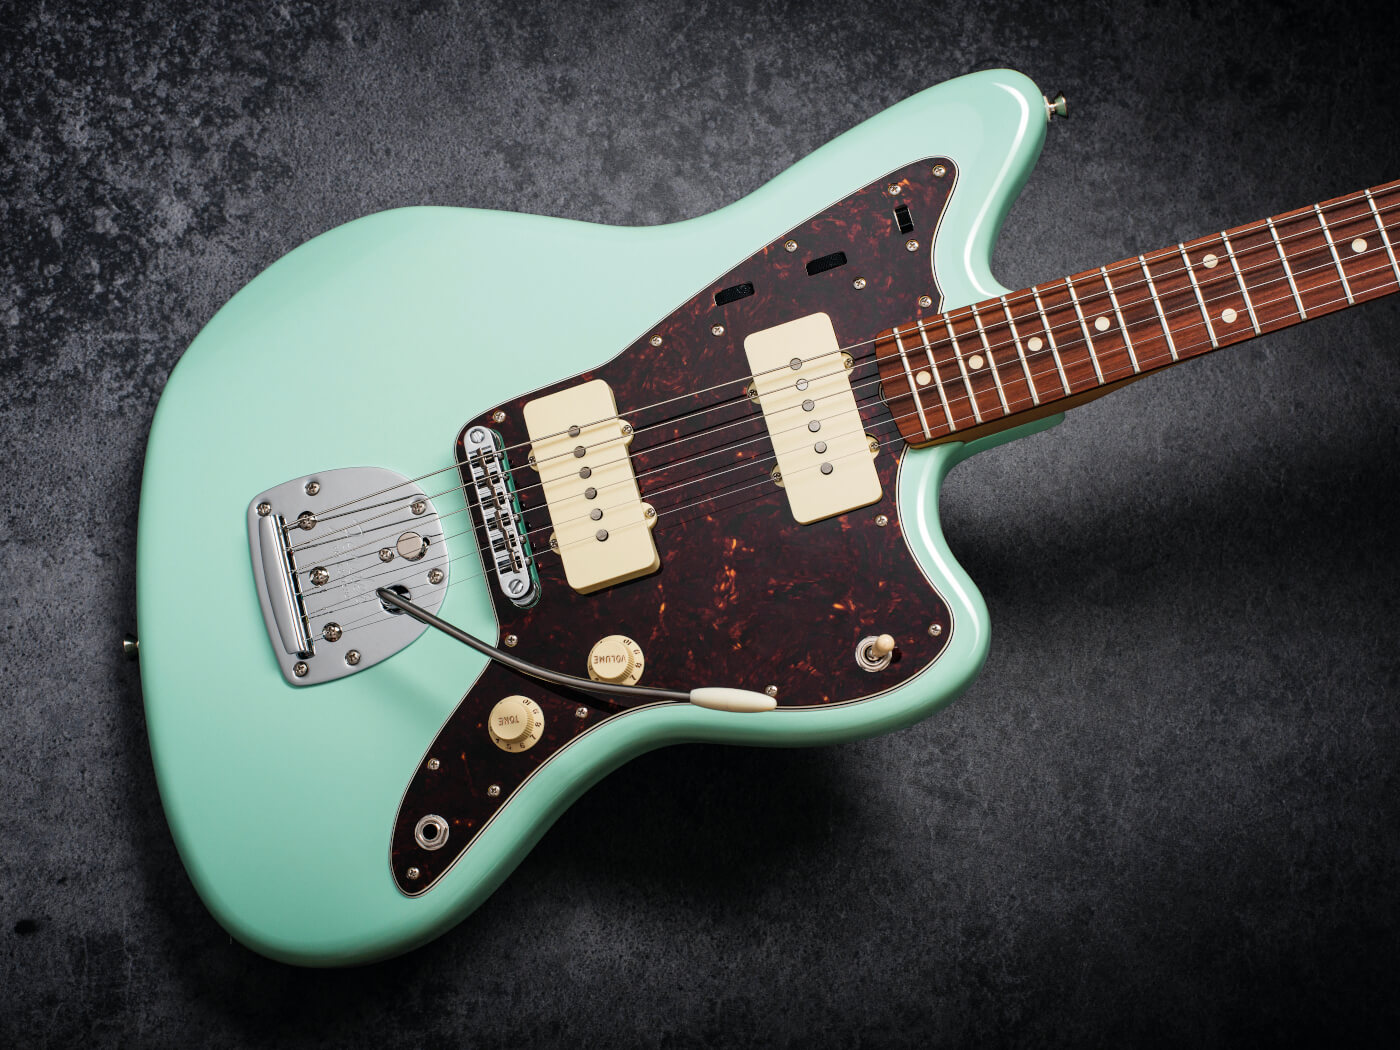 The Vintera '60s Jazzmaster modified in Surf Green